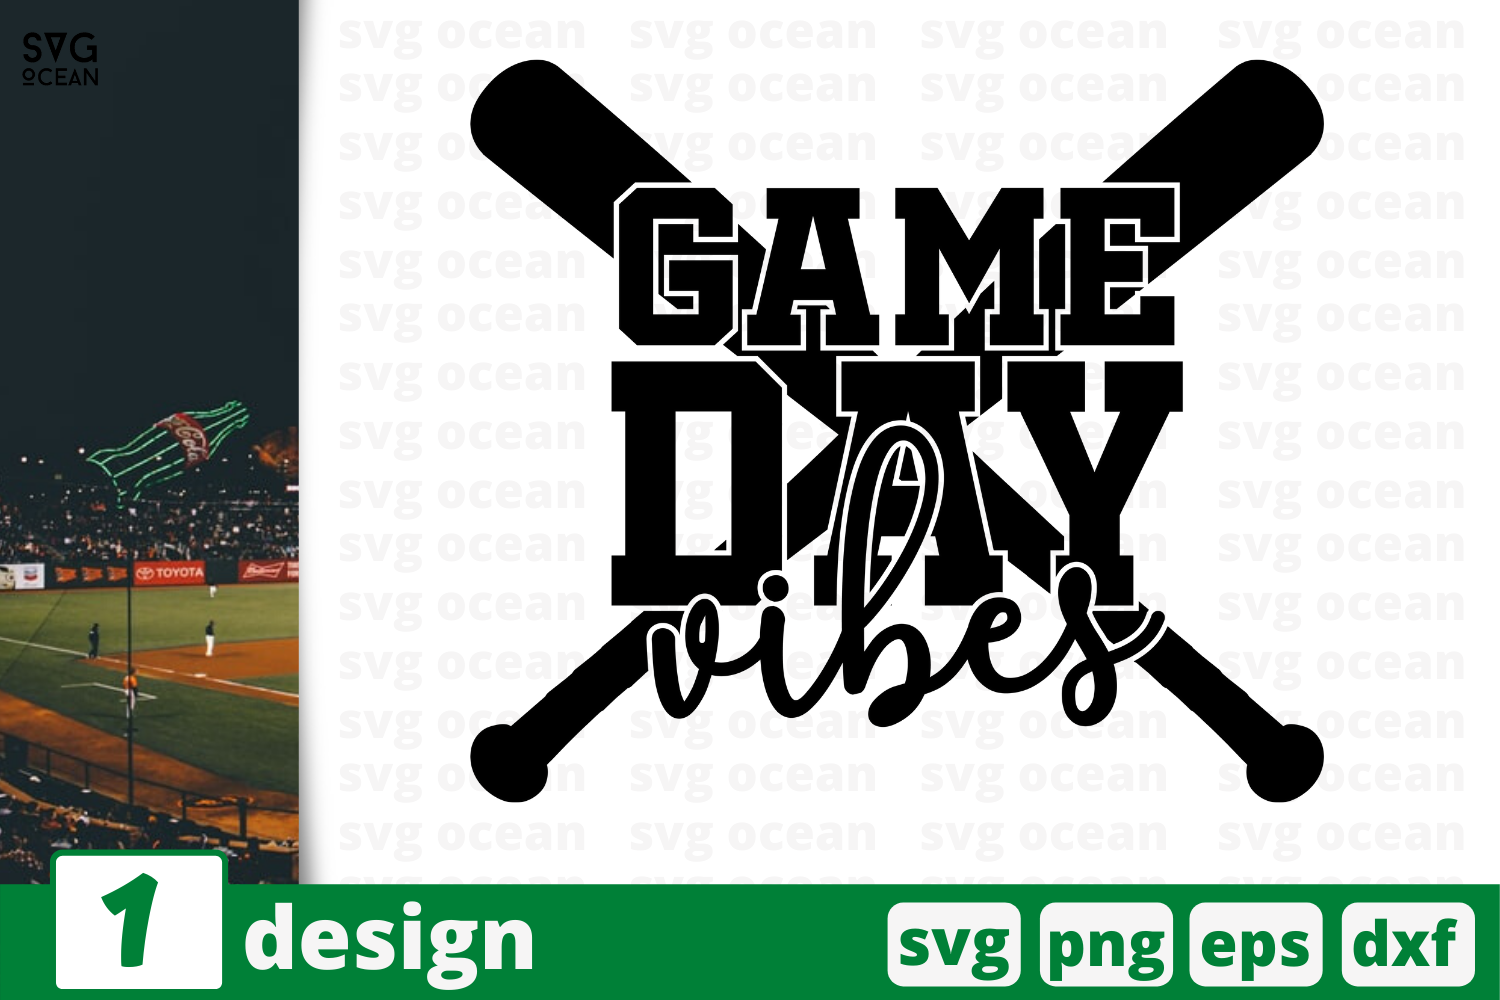 Download Free Game Day Vibes Graphic By Svgocean Creative Fabrica for Cricut Explore, Silhouette and other cutting machines.